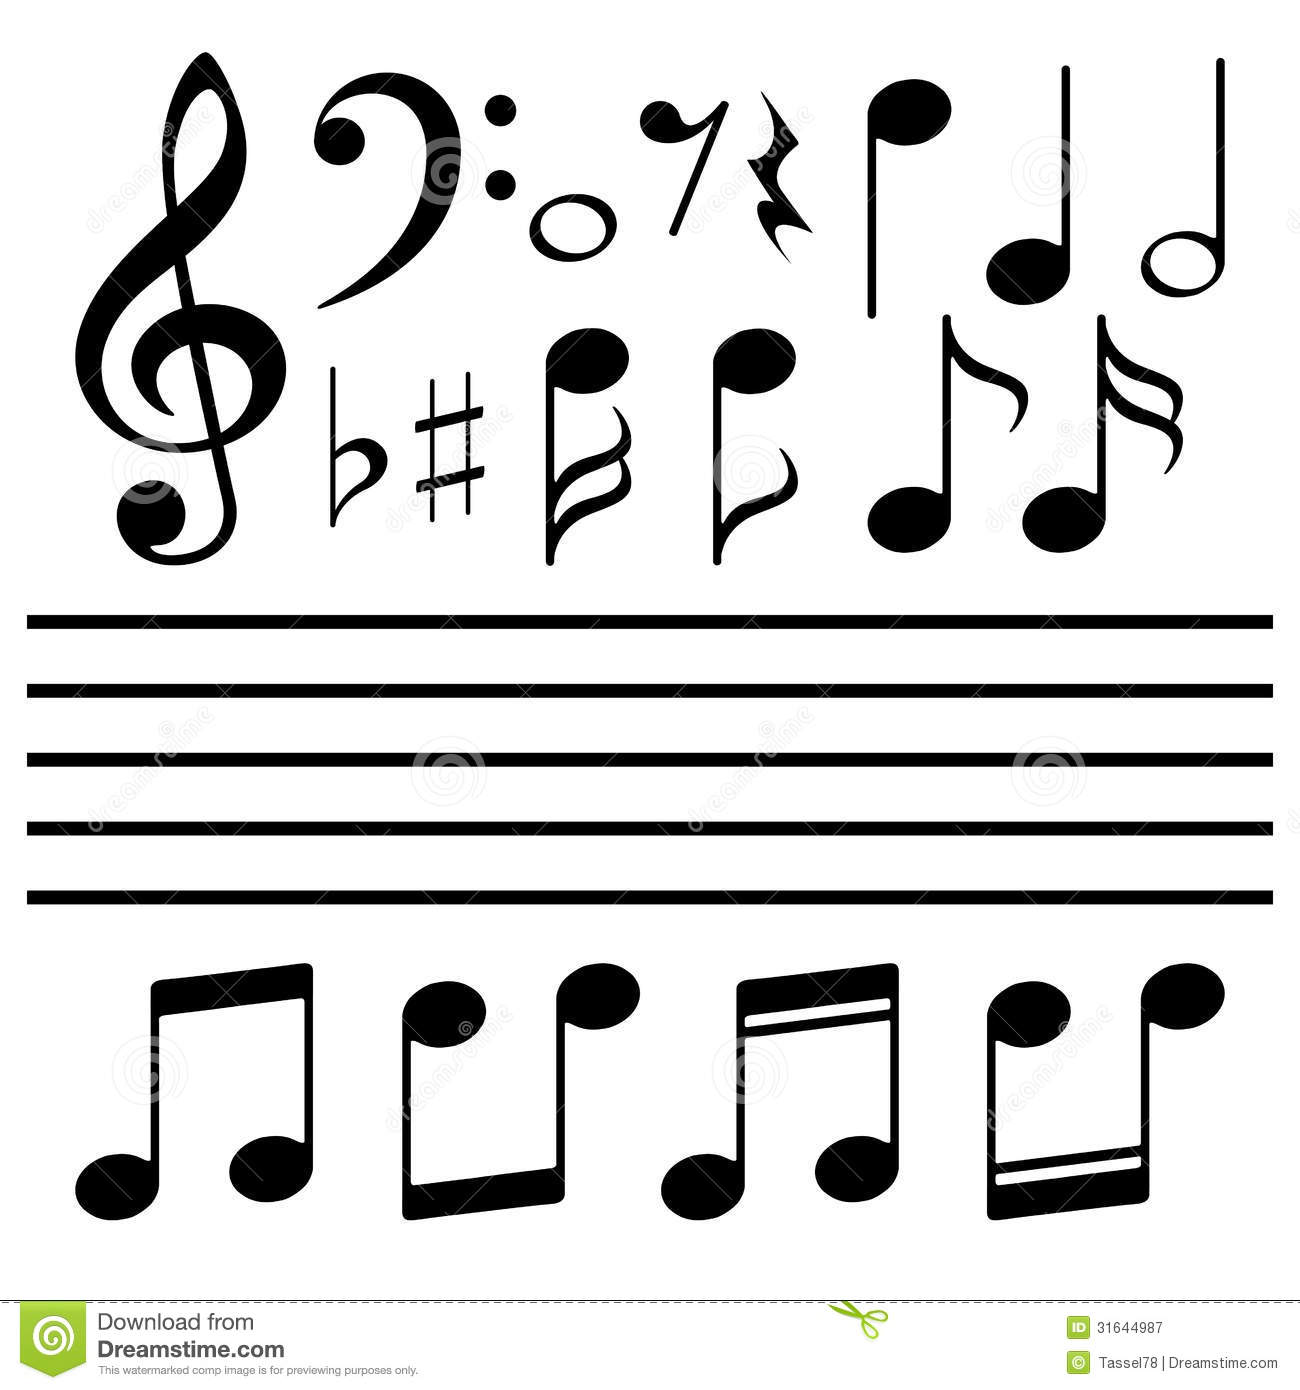 18 vector music notes symbols images black music notes clip art free vector music notes biocorpaavc